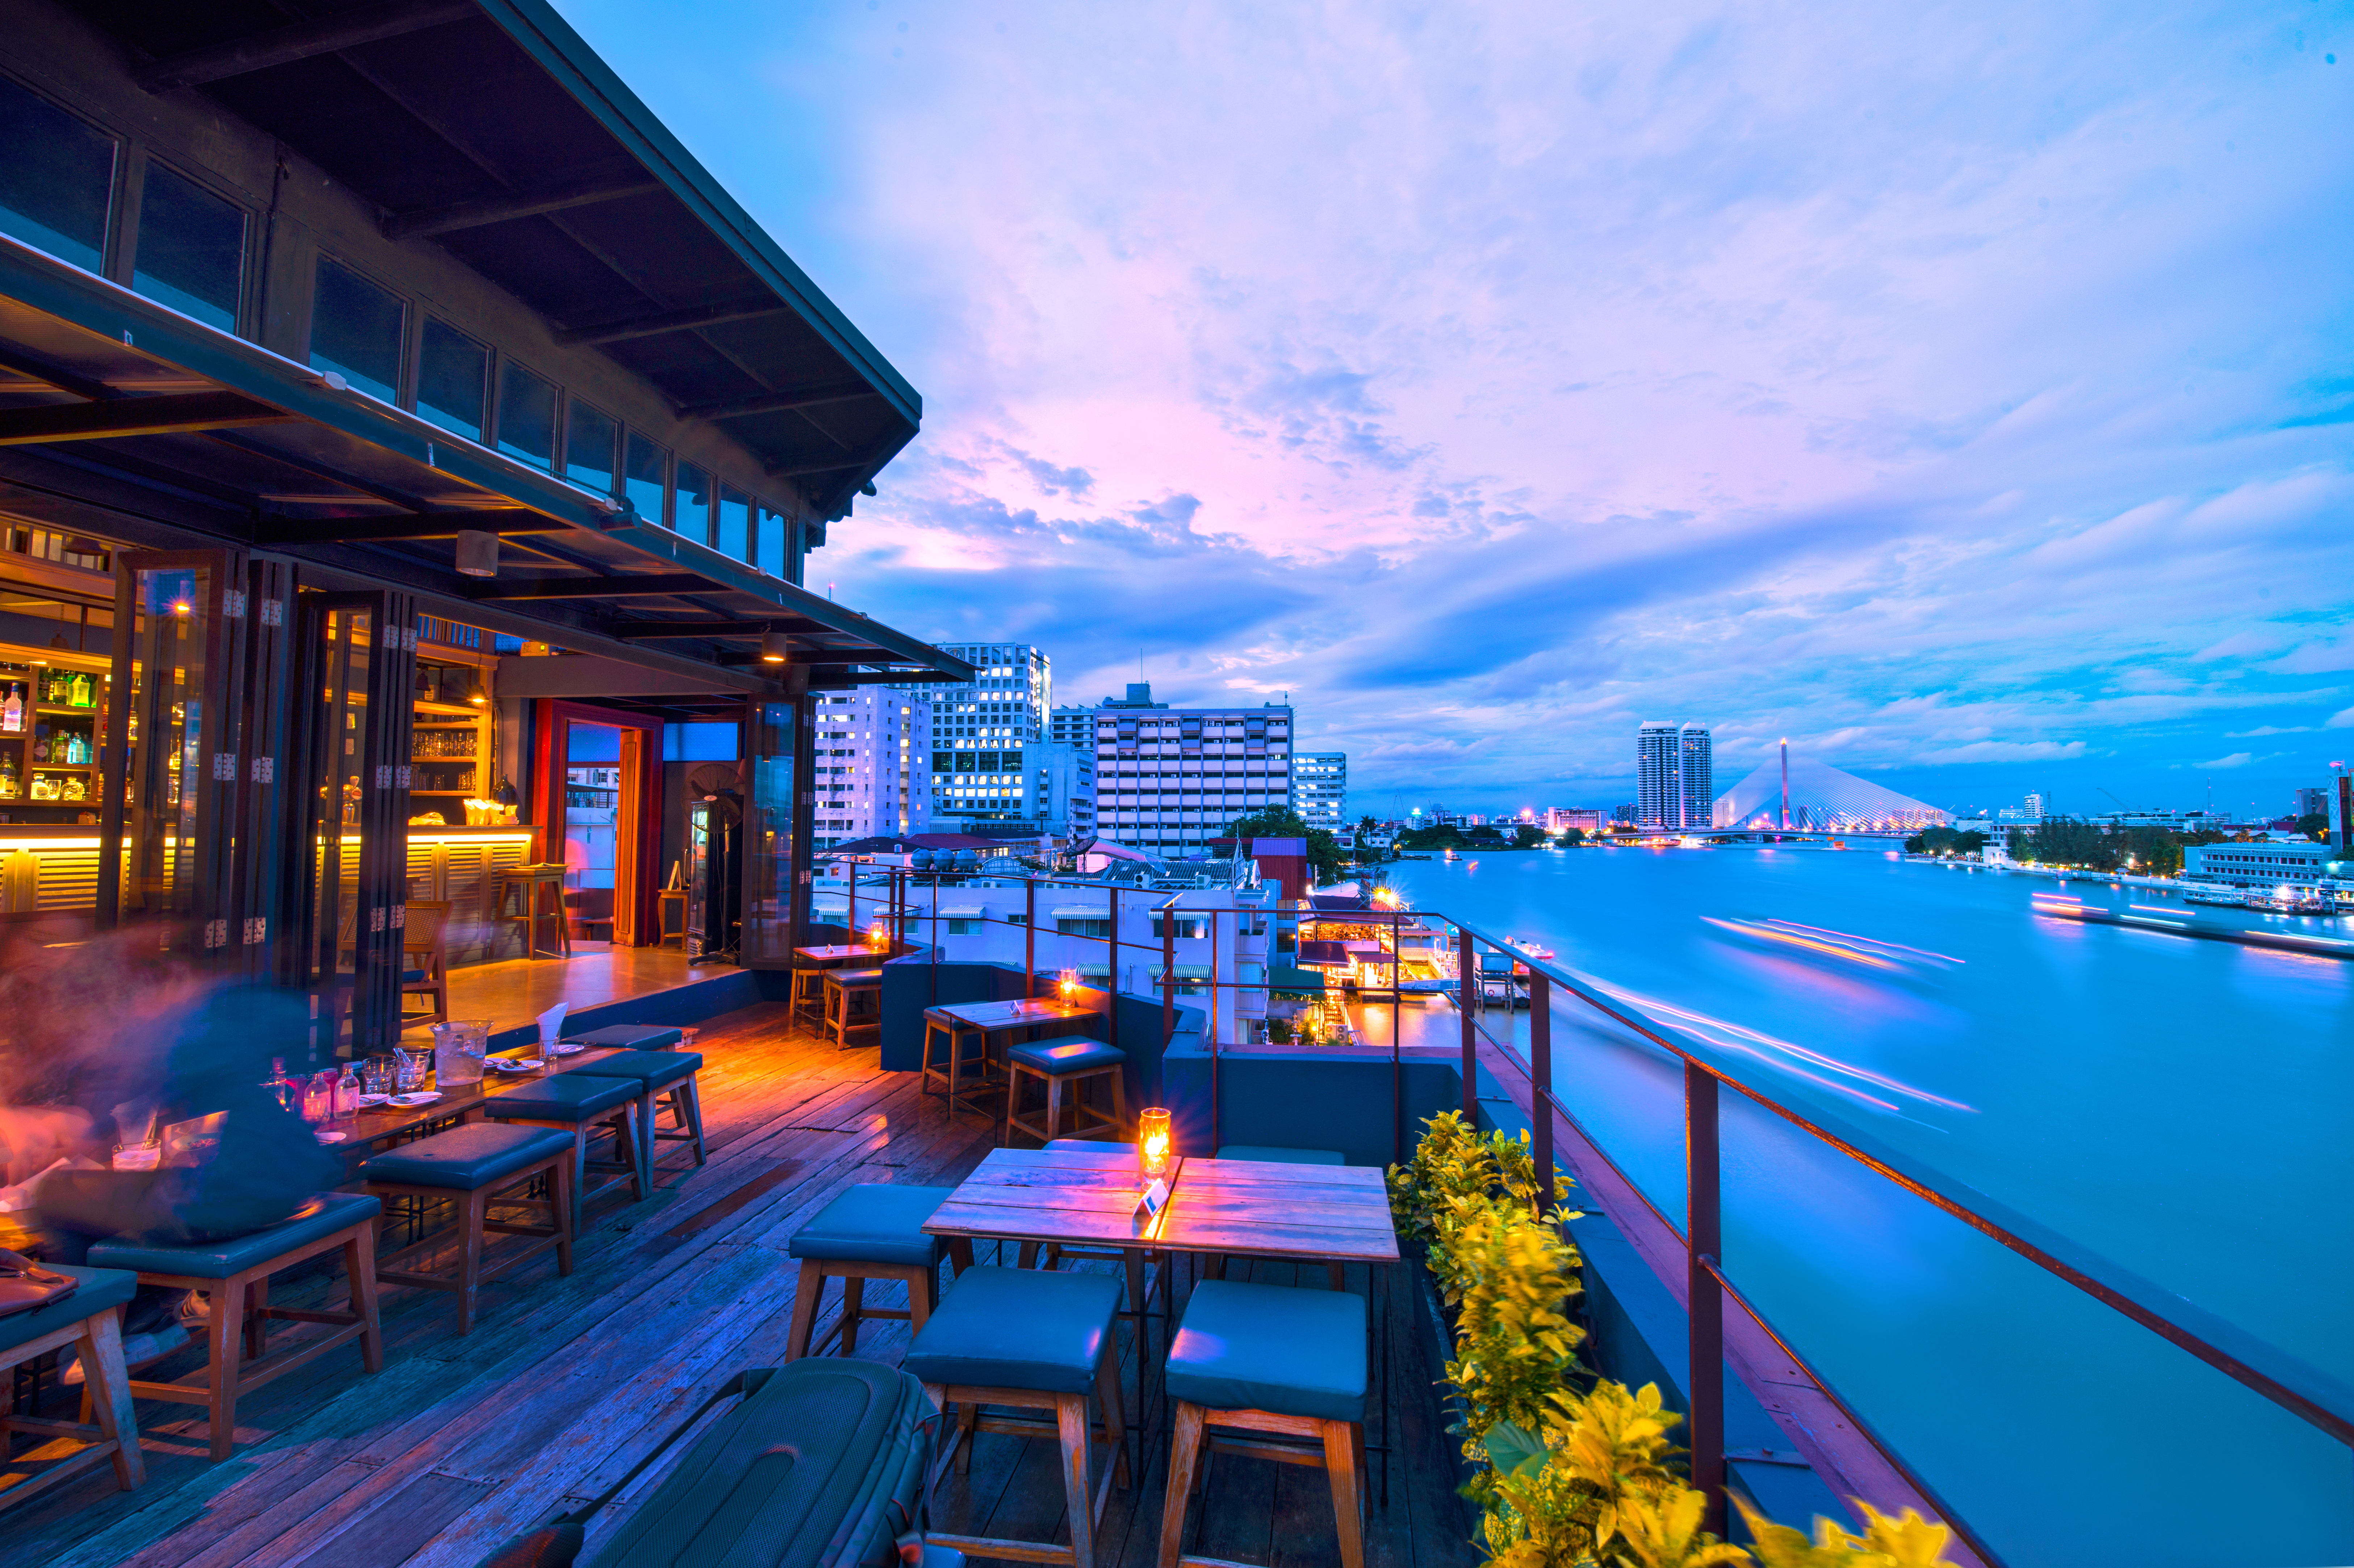 commercial restaurant deck on the water